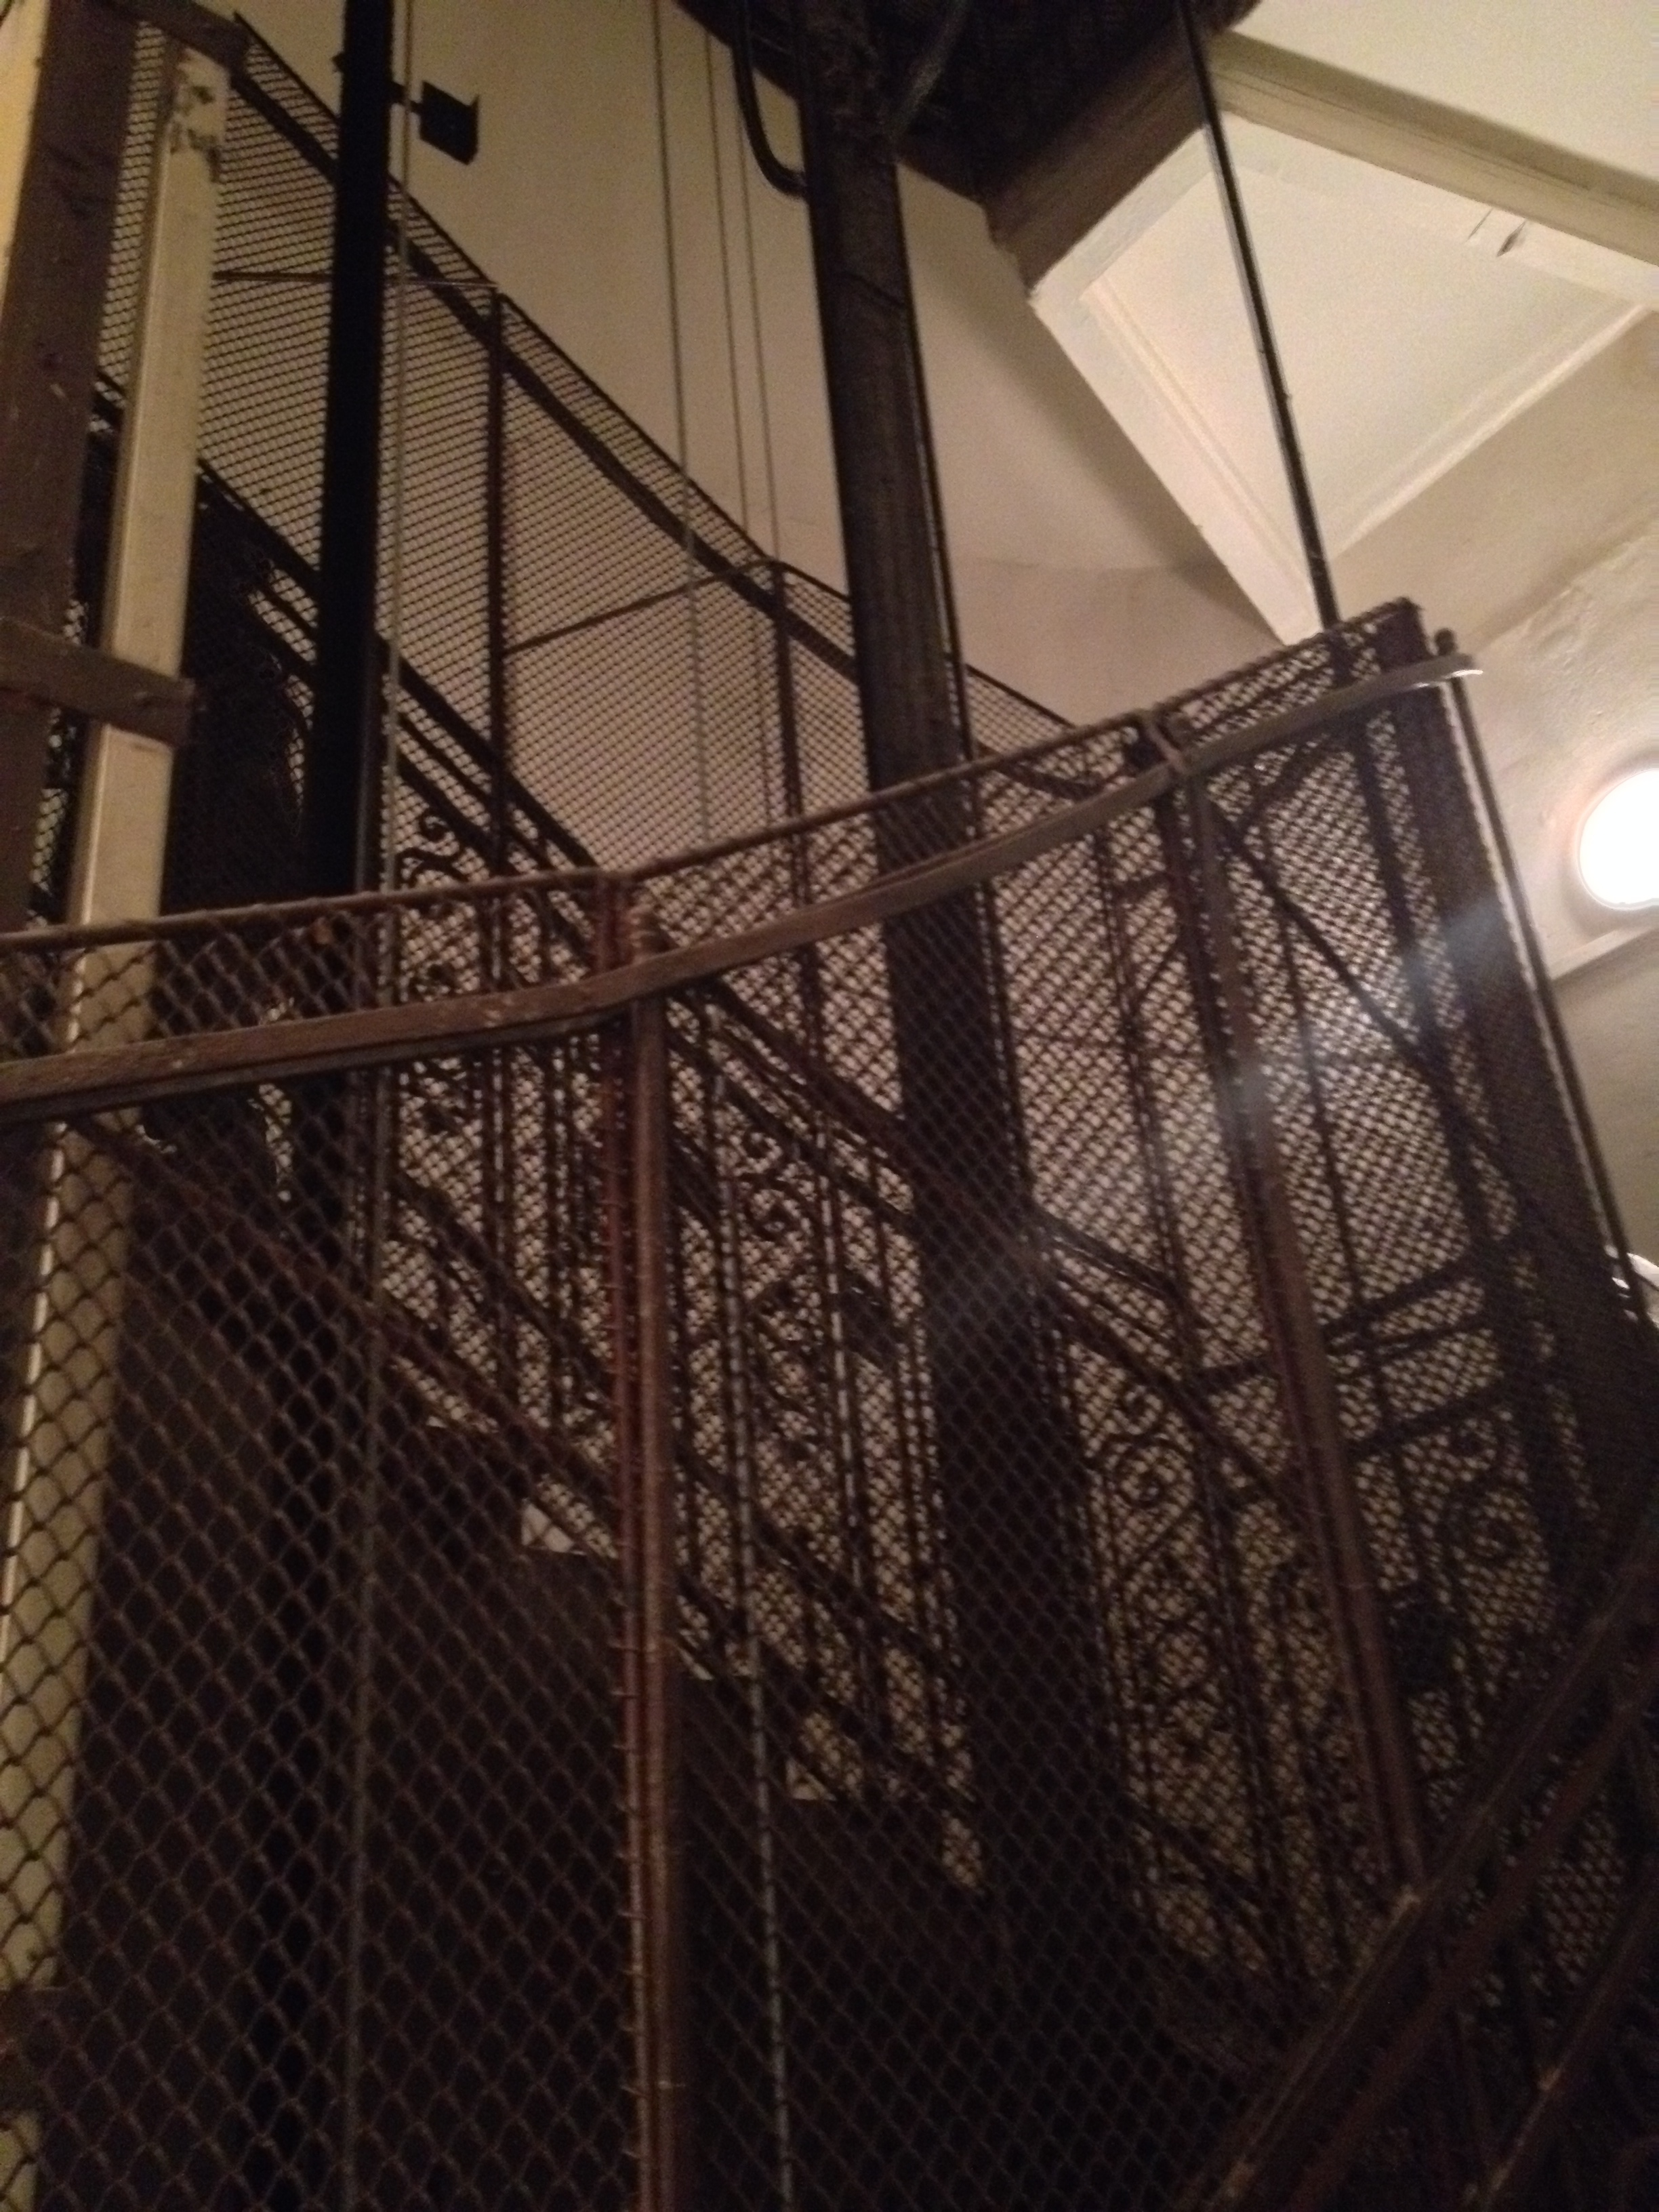 We walk up three flights of stairs surrounding this elevator cage. The lights in this building (and most others) are on a timer. The girls freak whenever the lights go out before we get to the door of our school on the third floor--I don't particularly like it either!